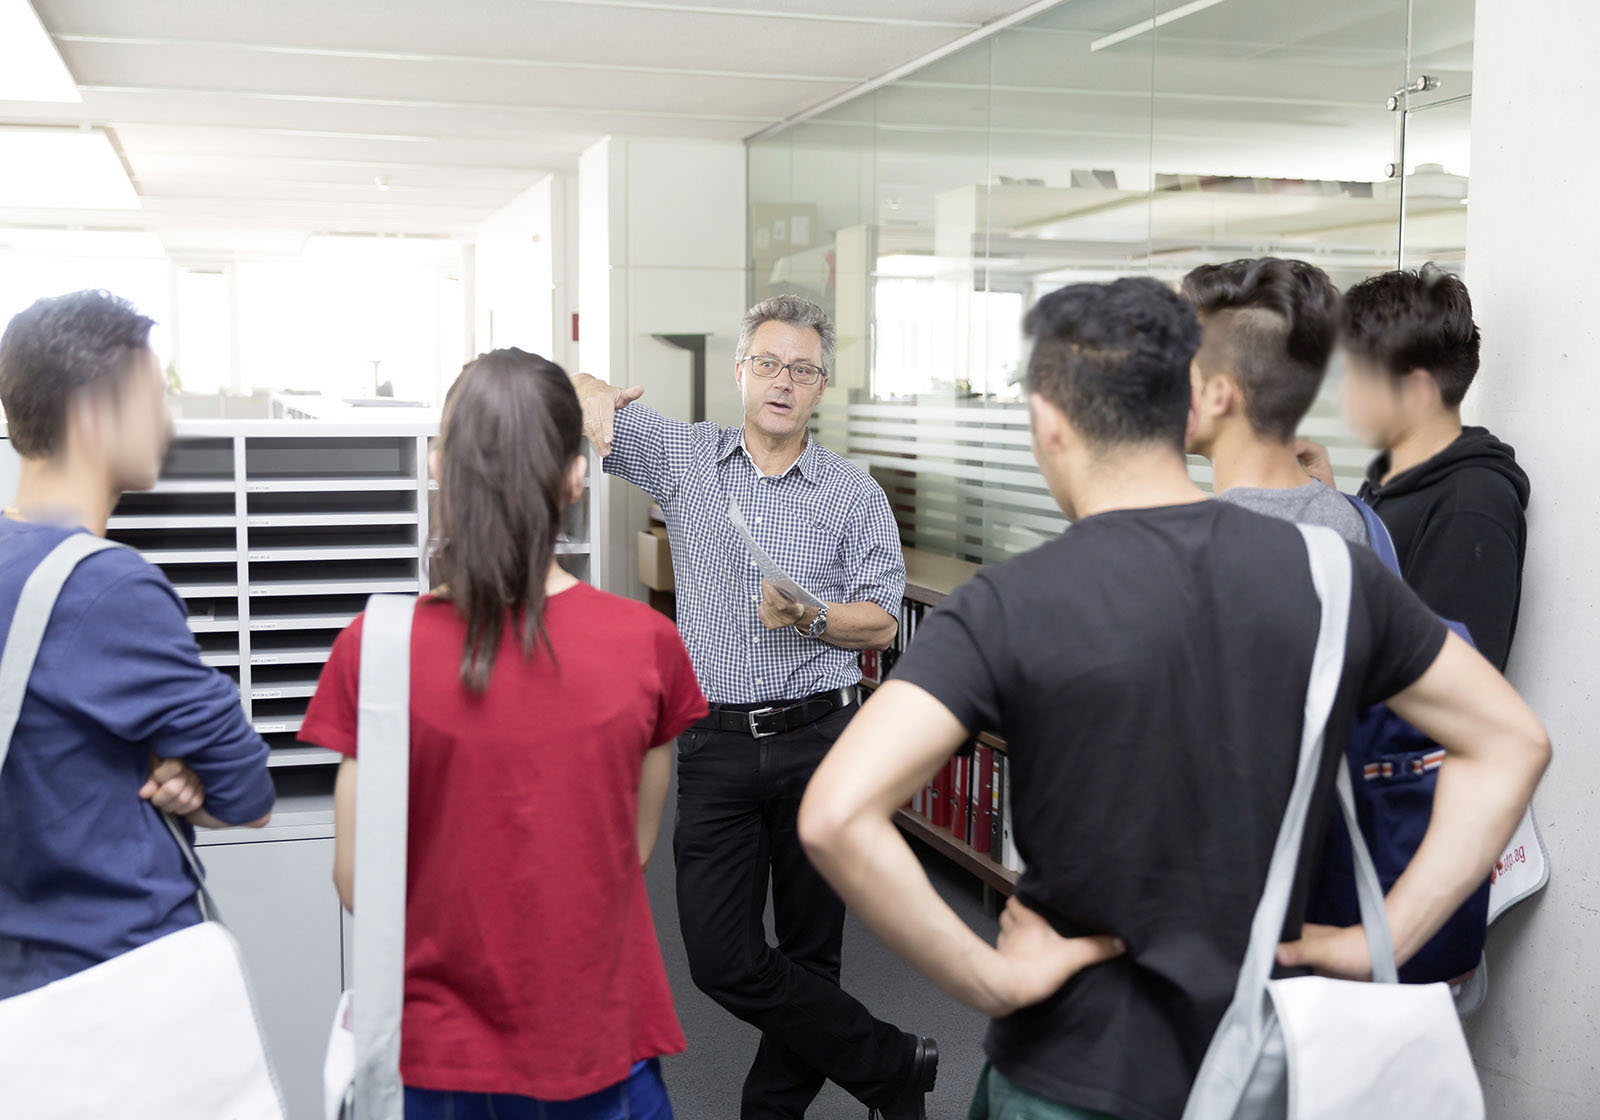 Walter Scamoni leads young people through the ATP office Photos: ATP